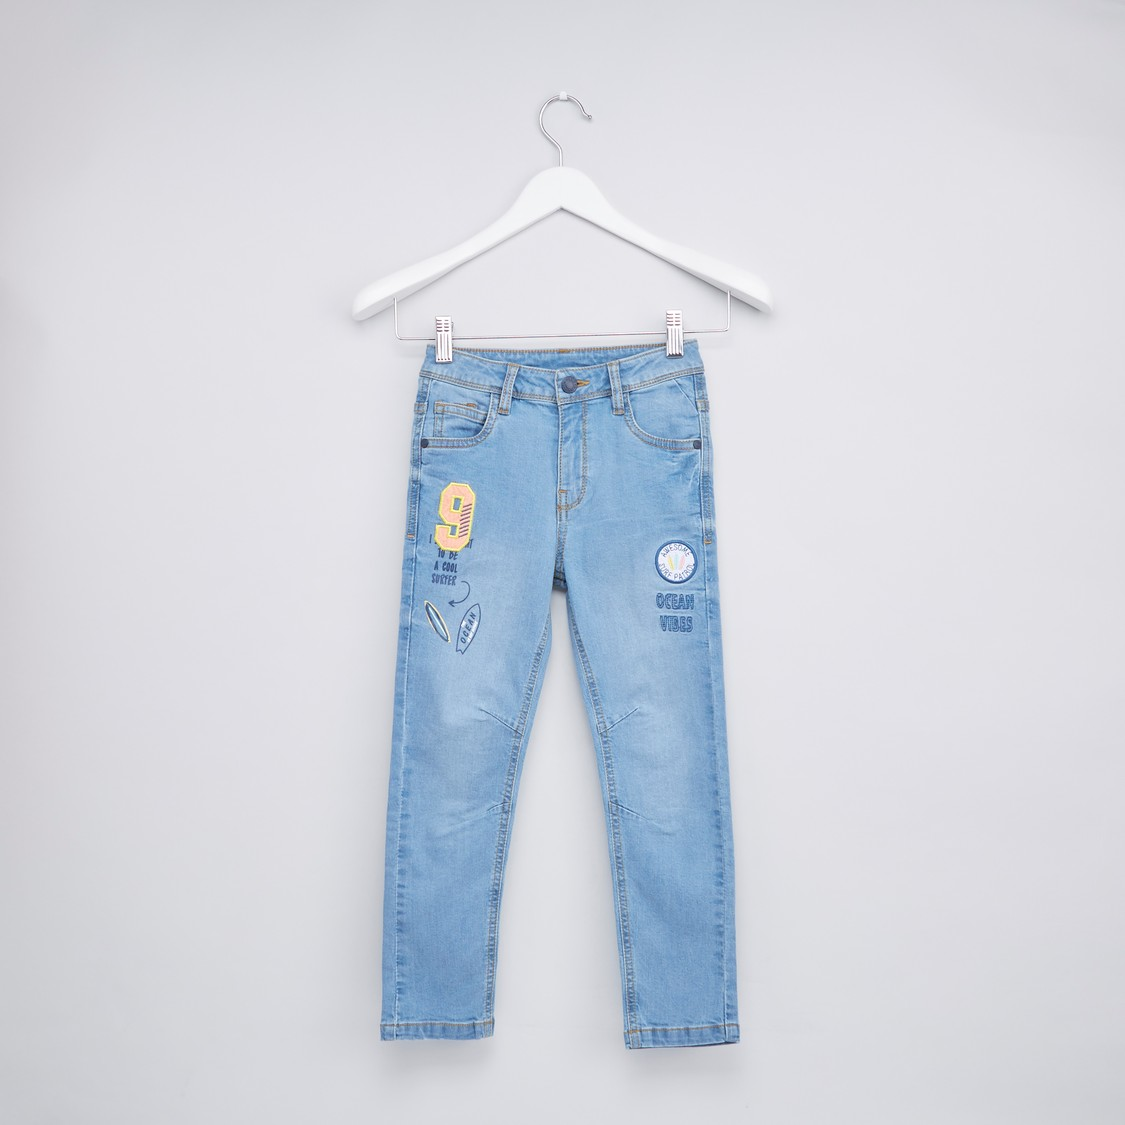 Embroidered Denim Pants with 5-Pockets and Button Closure